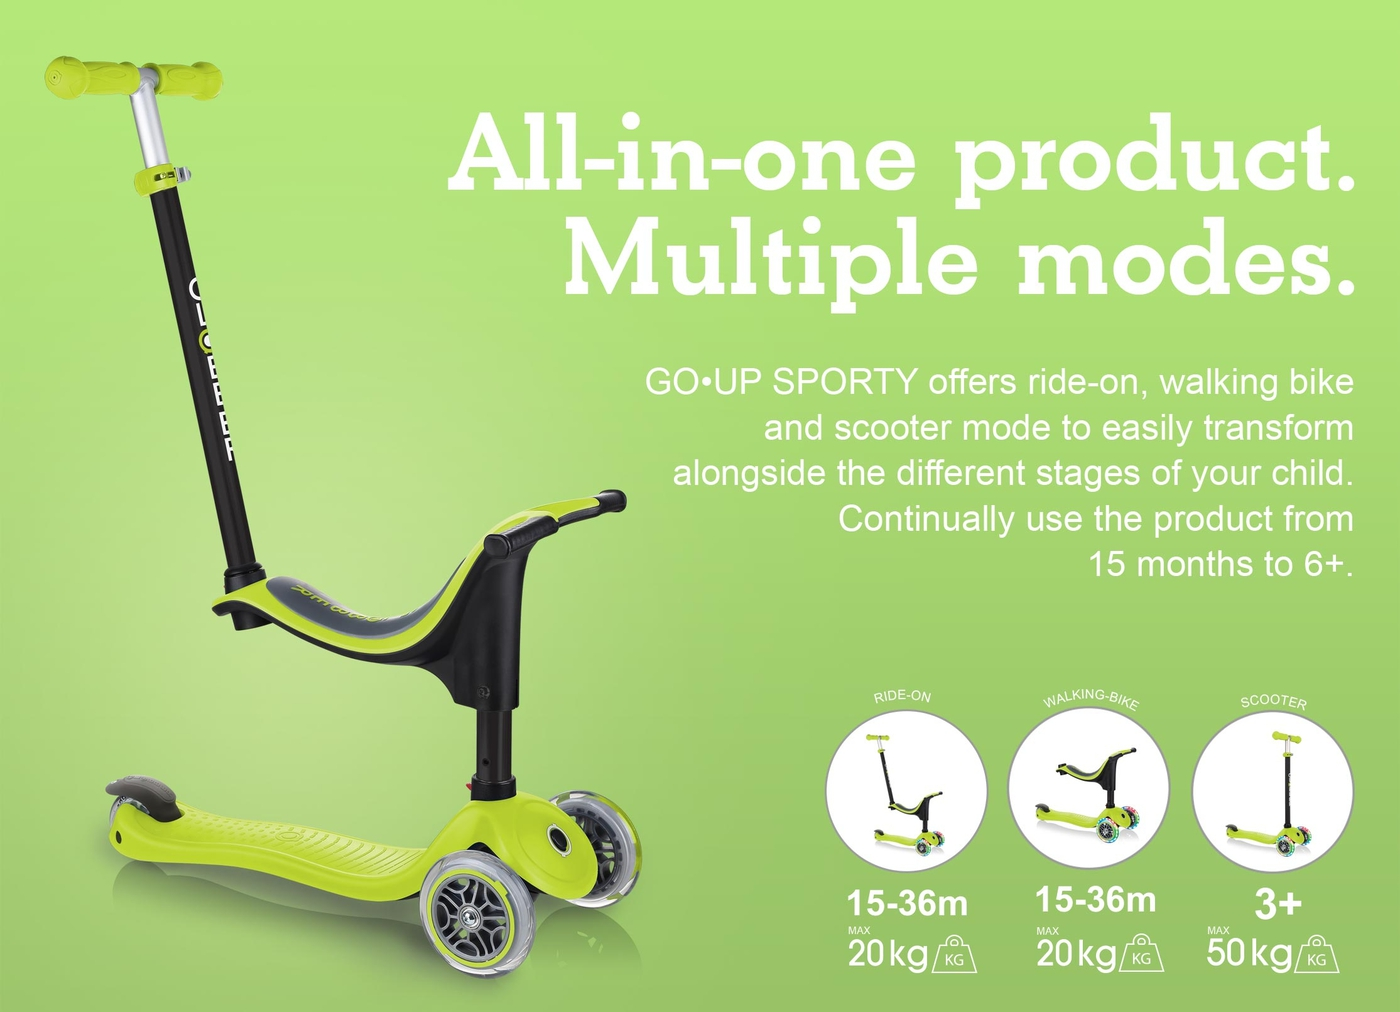 All-in-one product. Multiple modes.